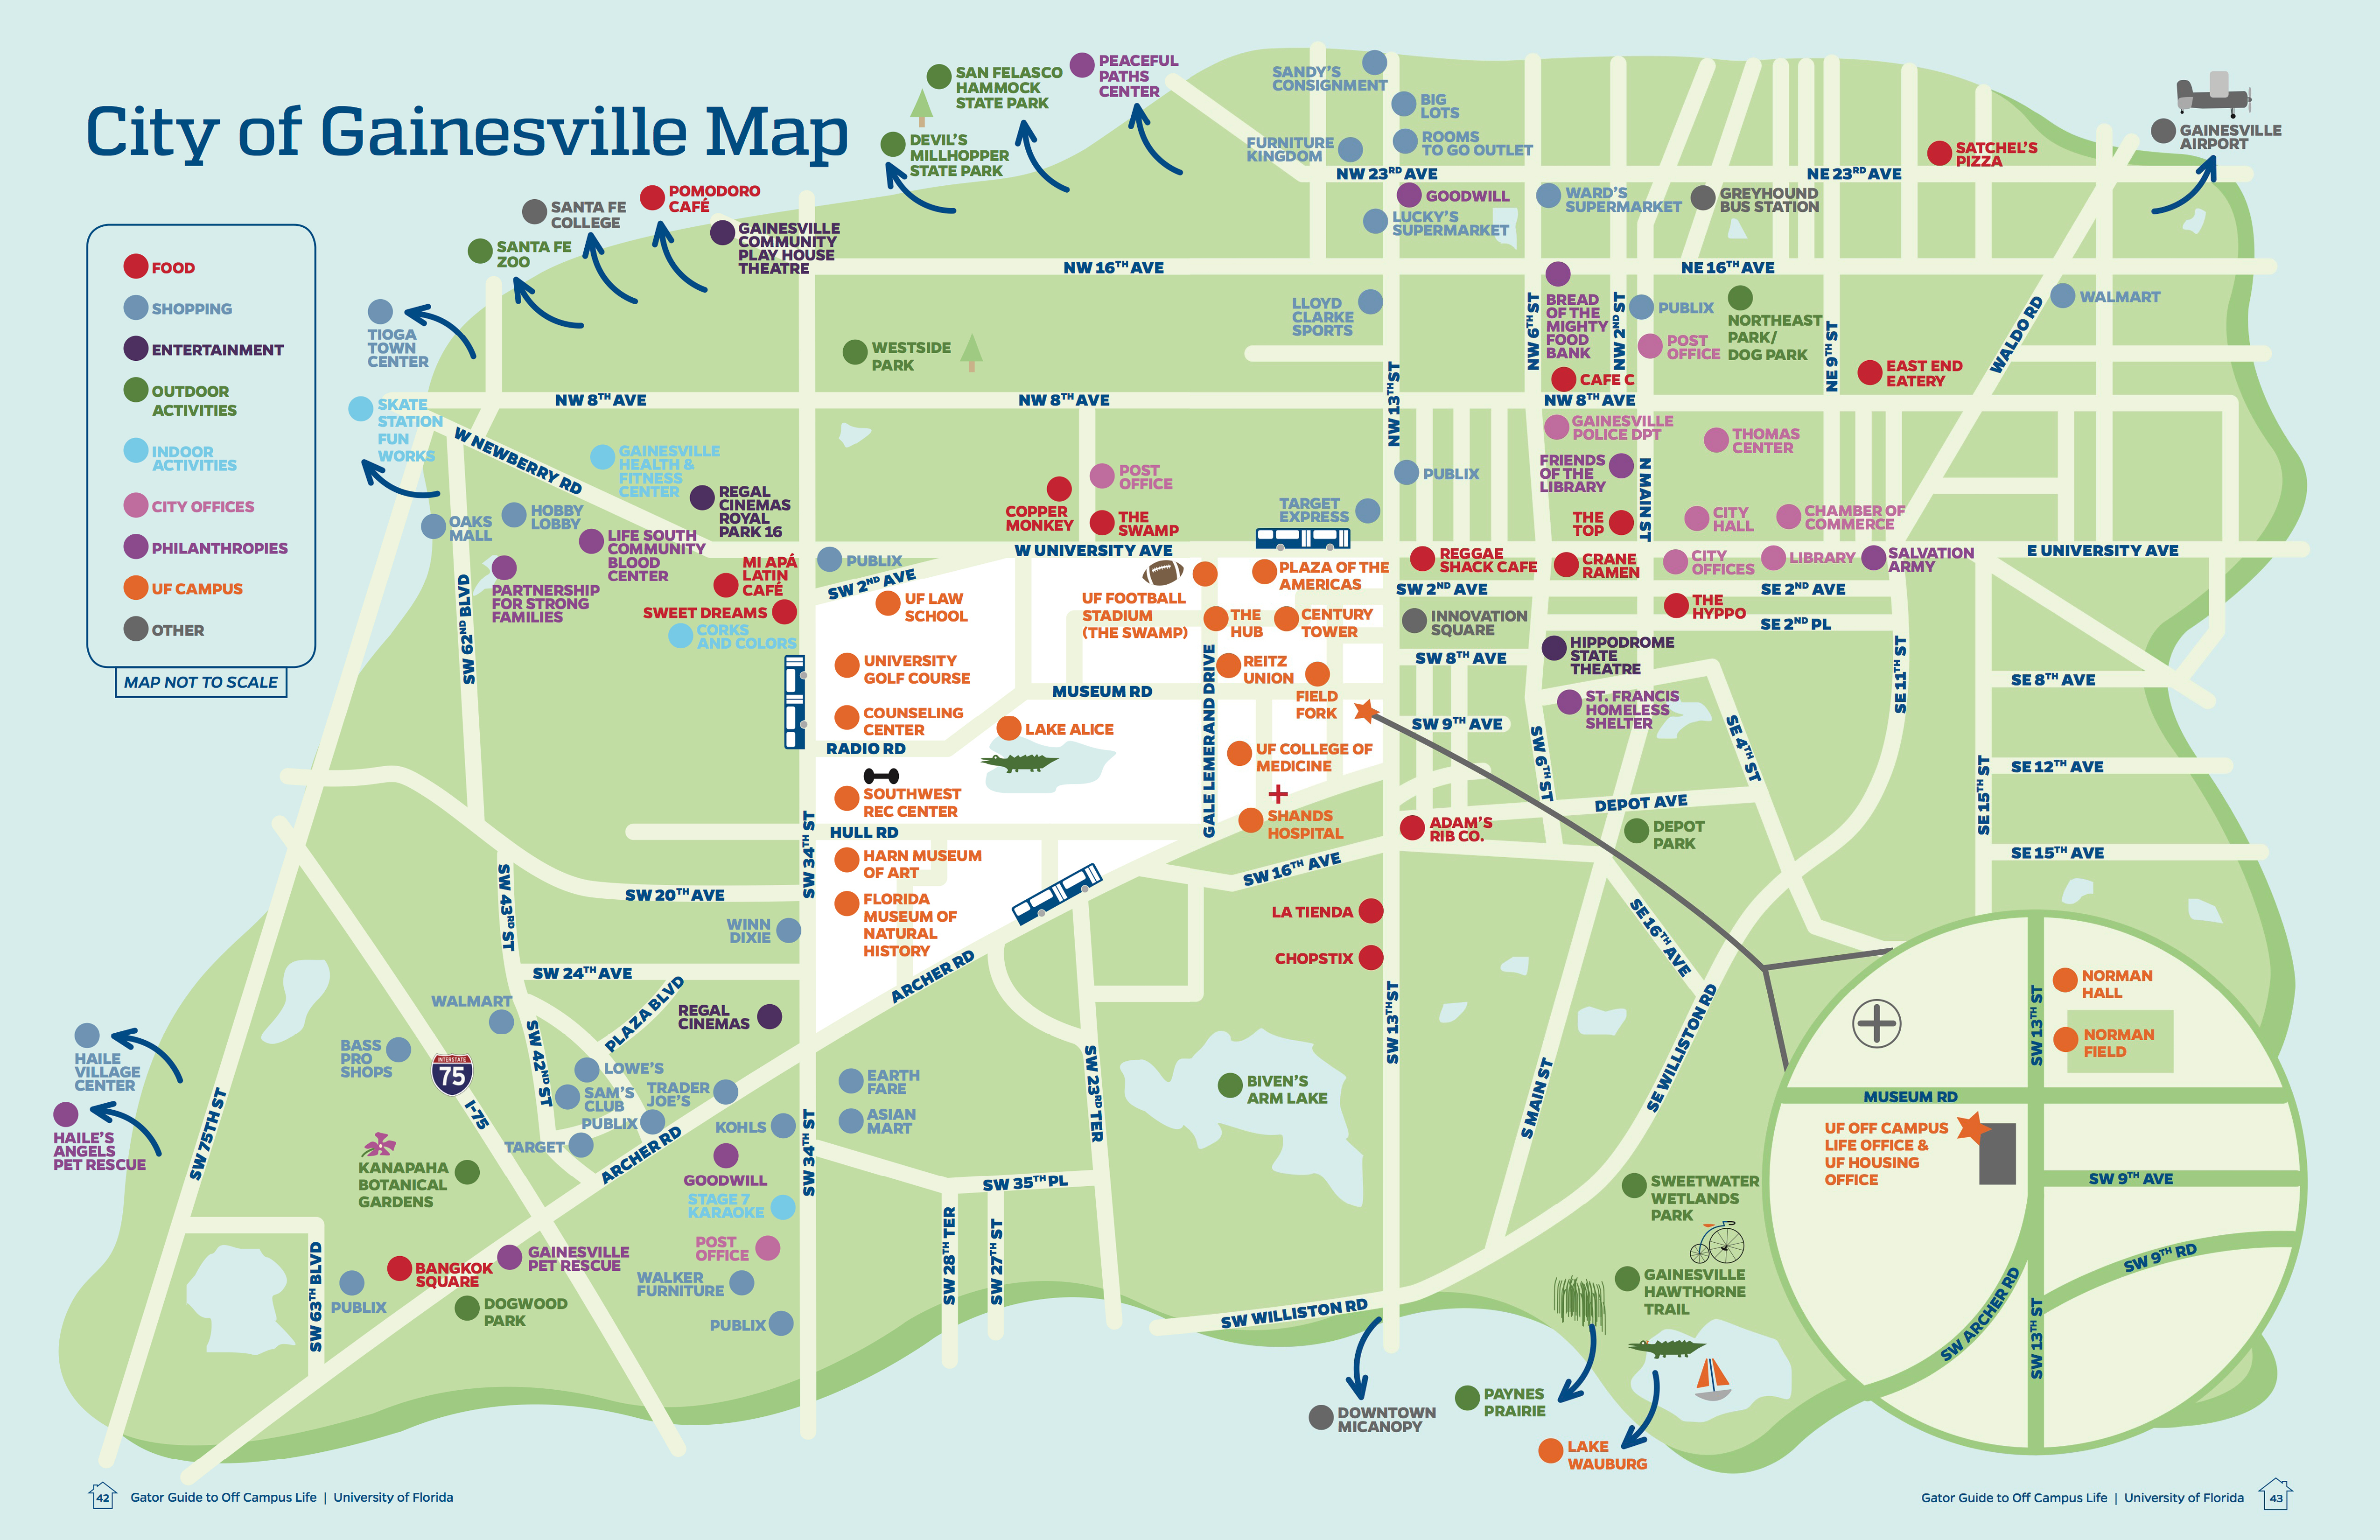 University Of Florida Off Campus Life - Christina Singer - Map Of Gainesville Florida Area